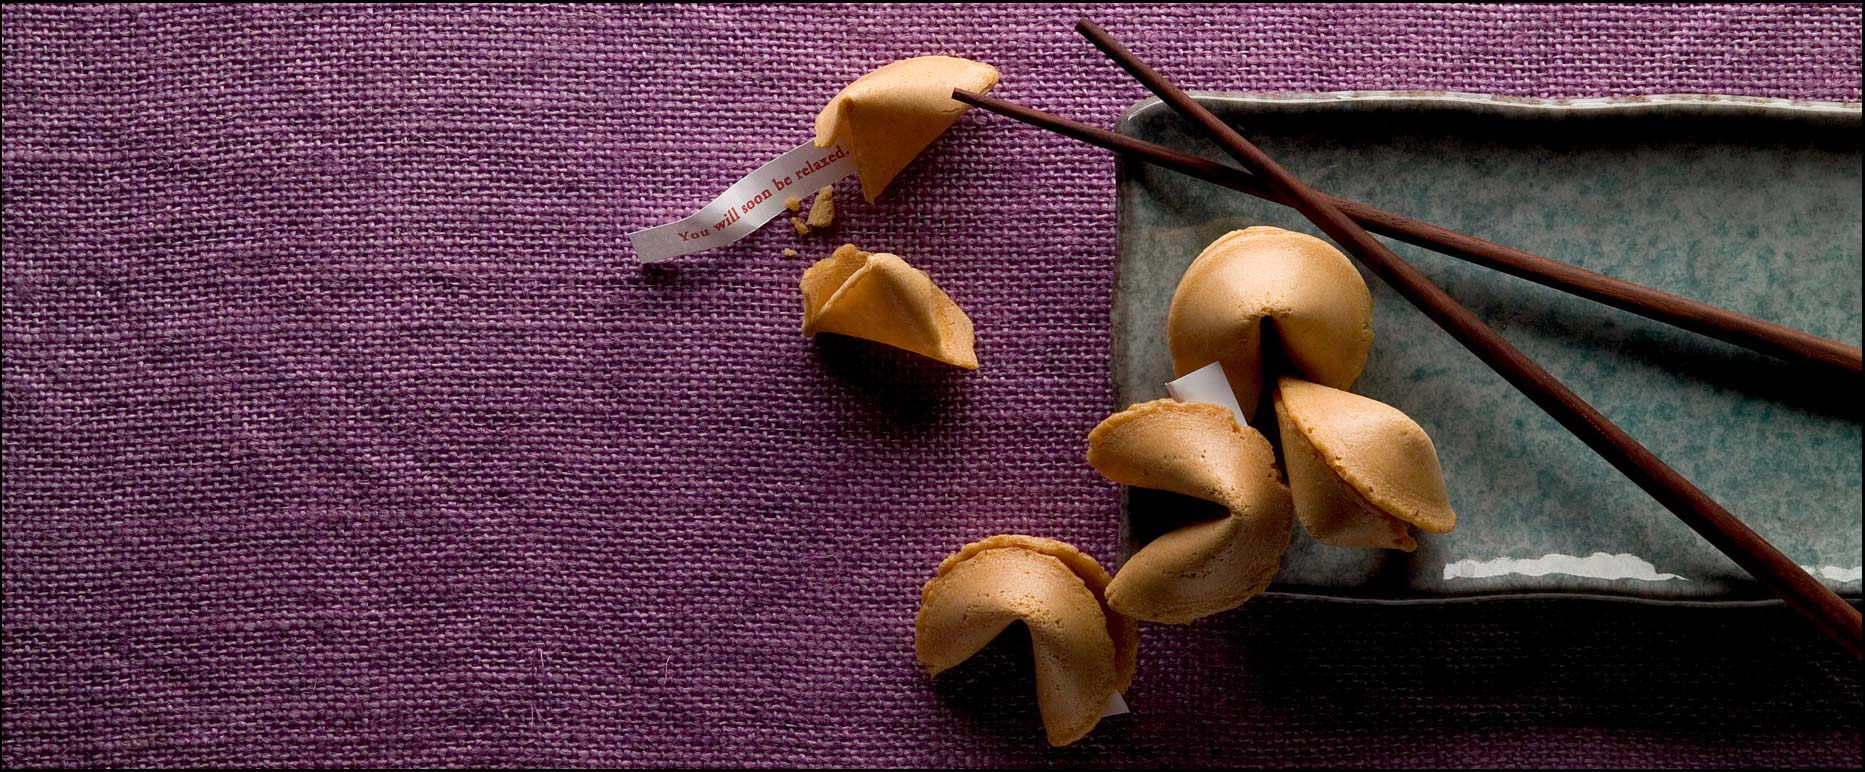 Fortune cookies on a purple background